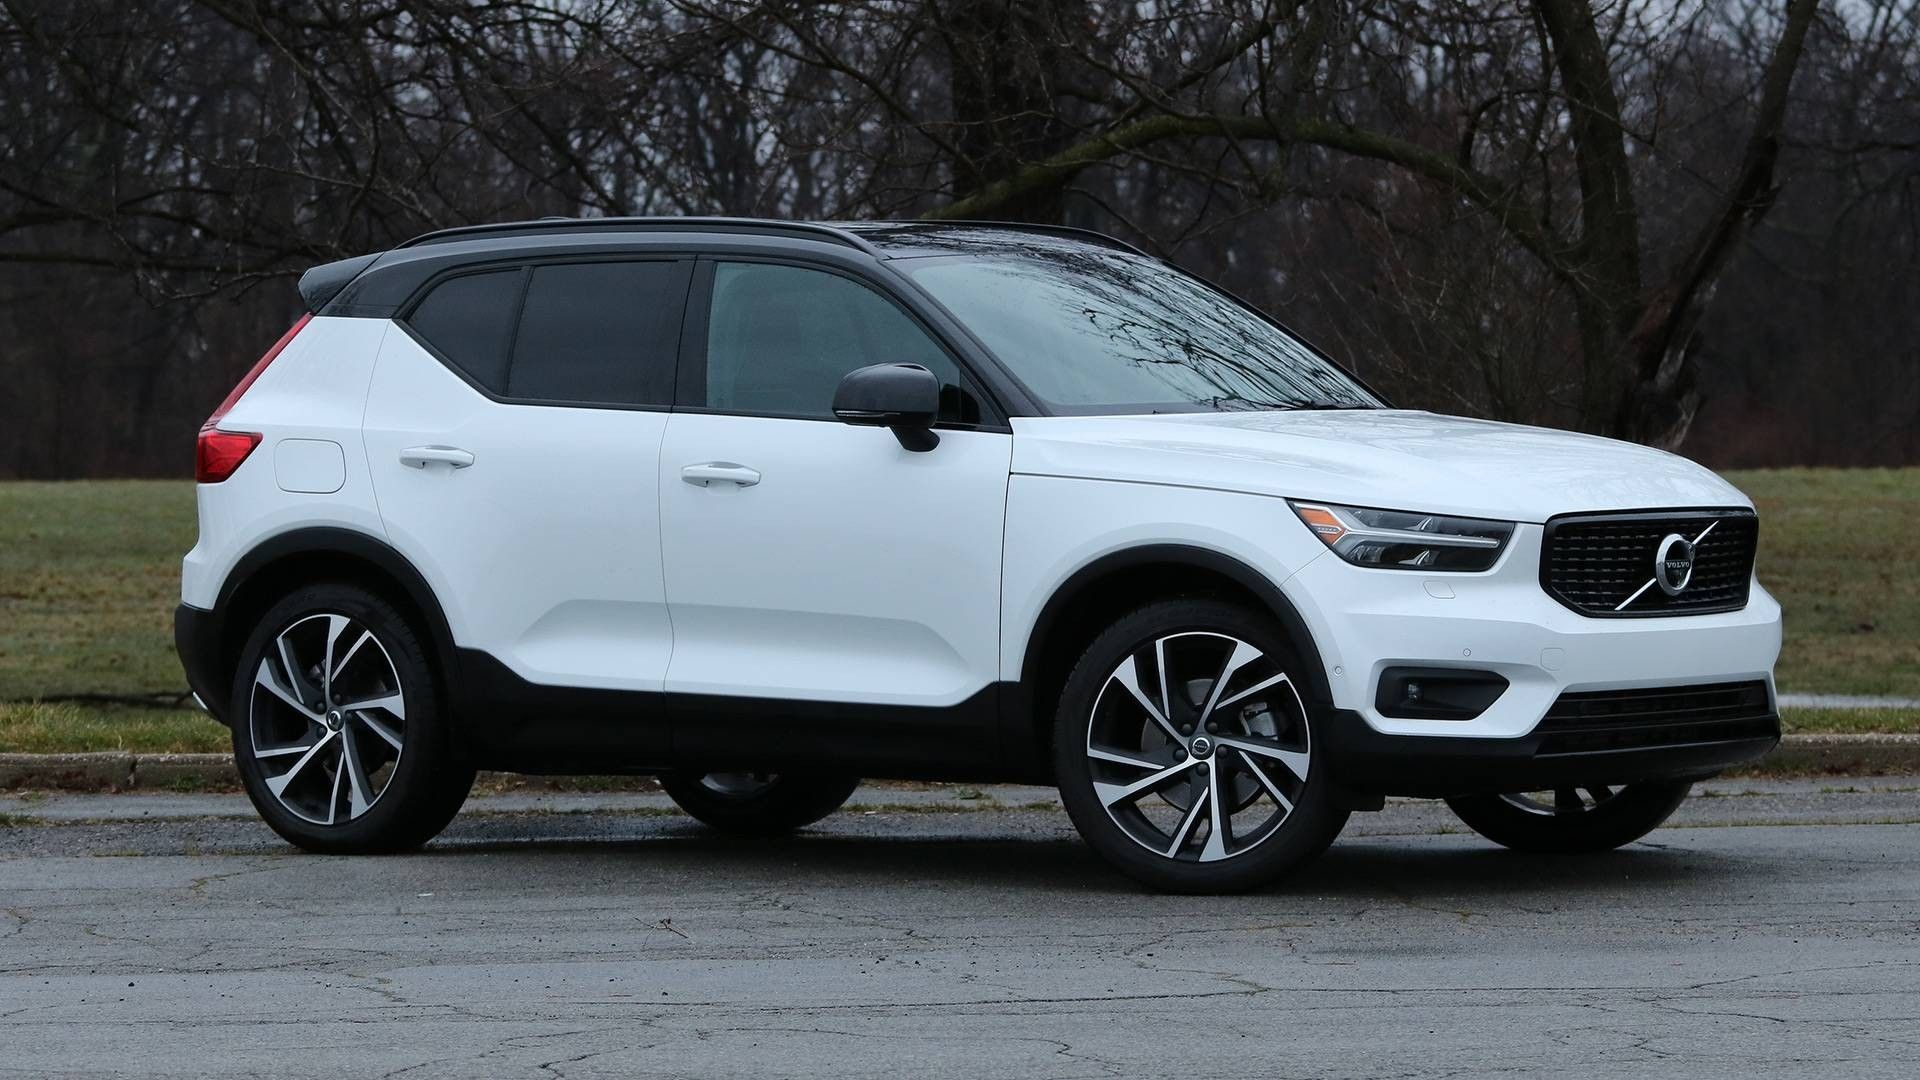 2019 Volvo Xc40 Ground Clearance Review Specs And Release Date Volvo Volvo Suv Volvo Xc